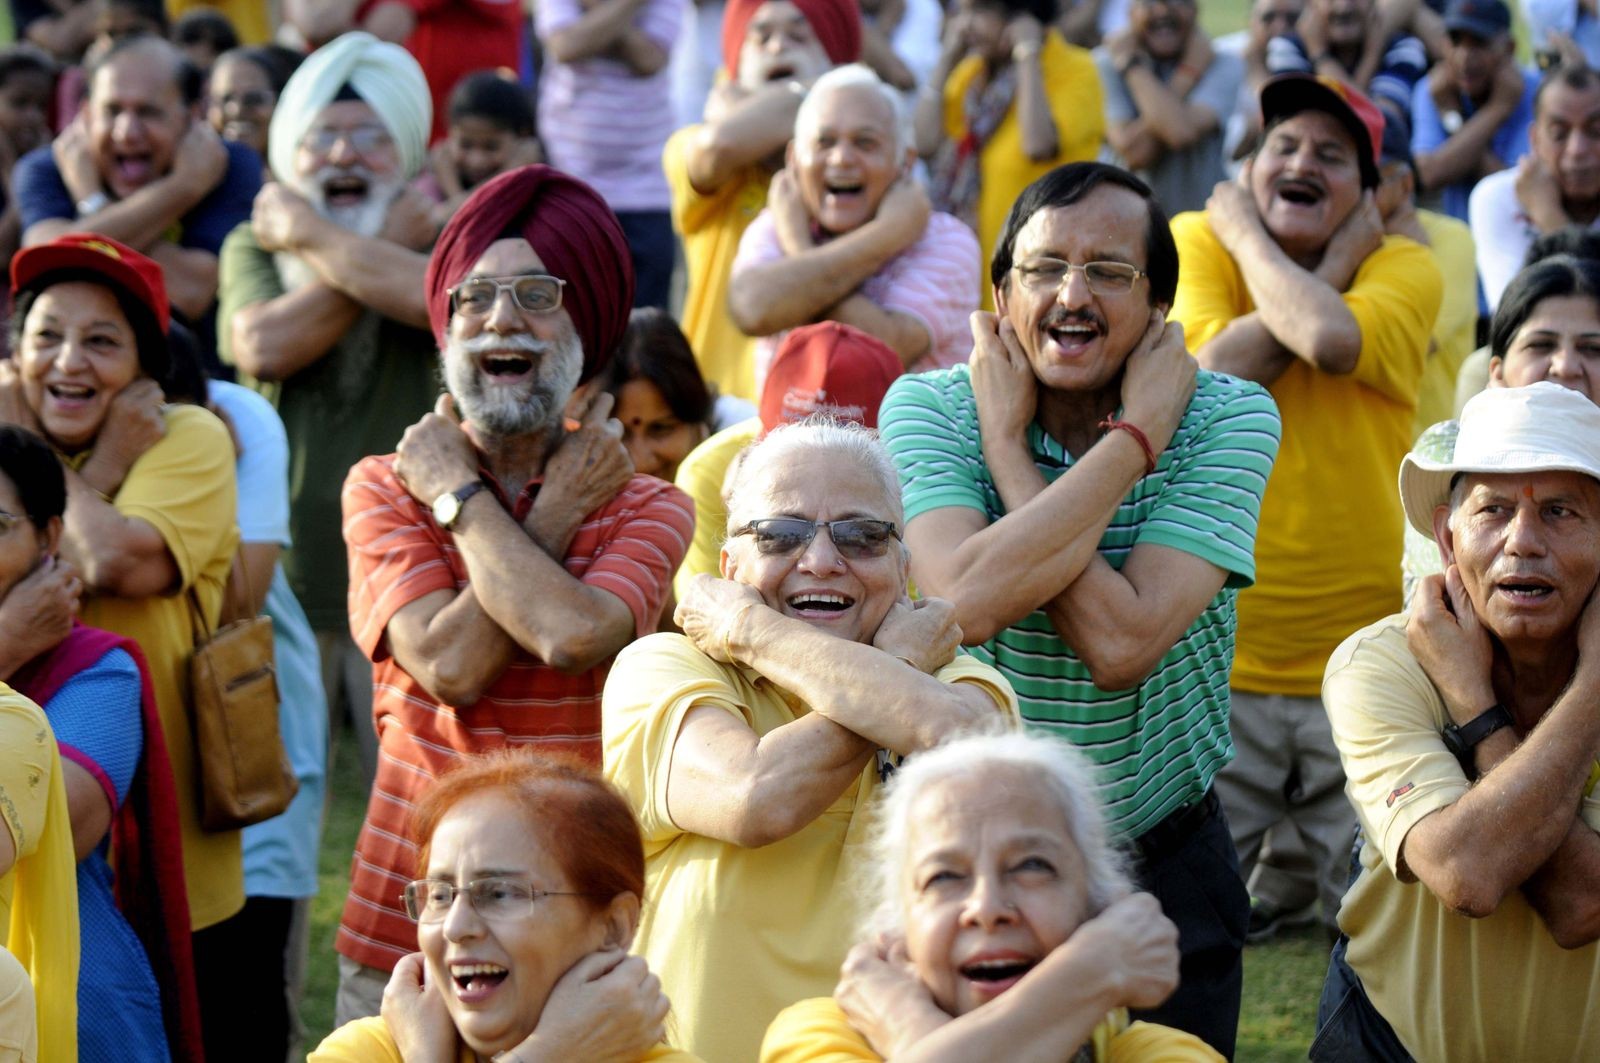 People Take Part In Laughing Yoga Session Ahead Of World Laughing Day